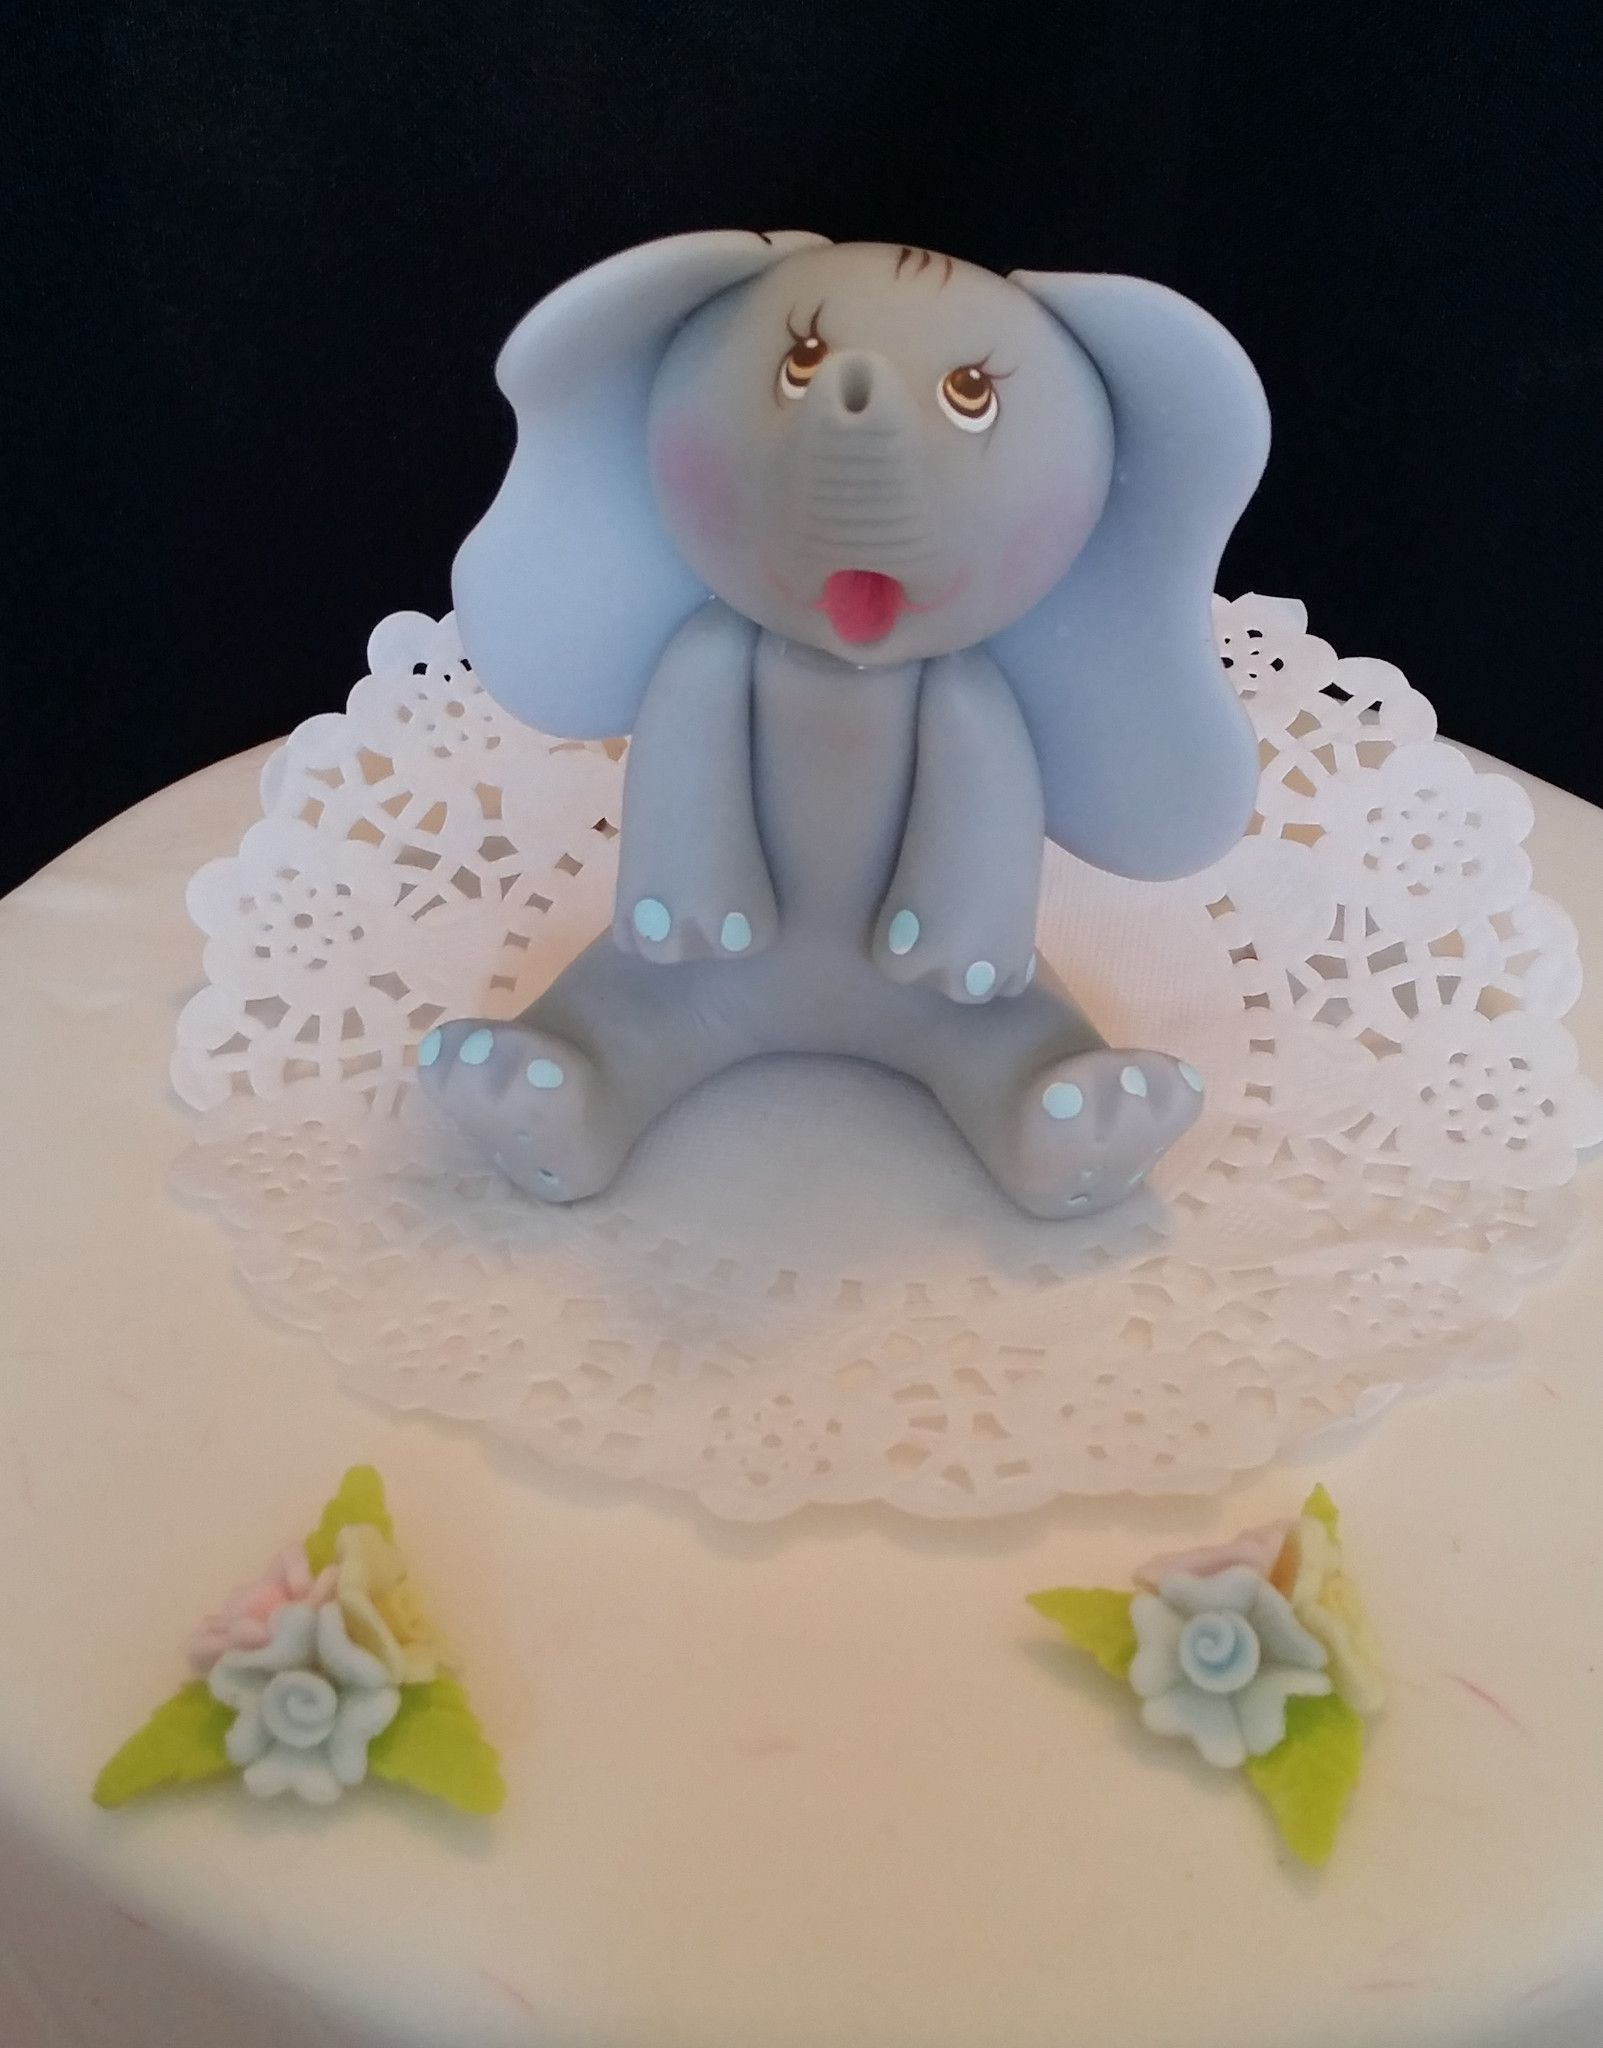 Elephant Cake Topper Made Of Cold Porcelain Great For Elephant